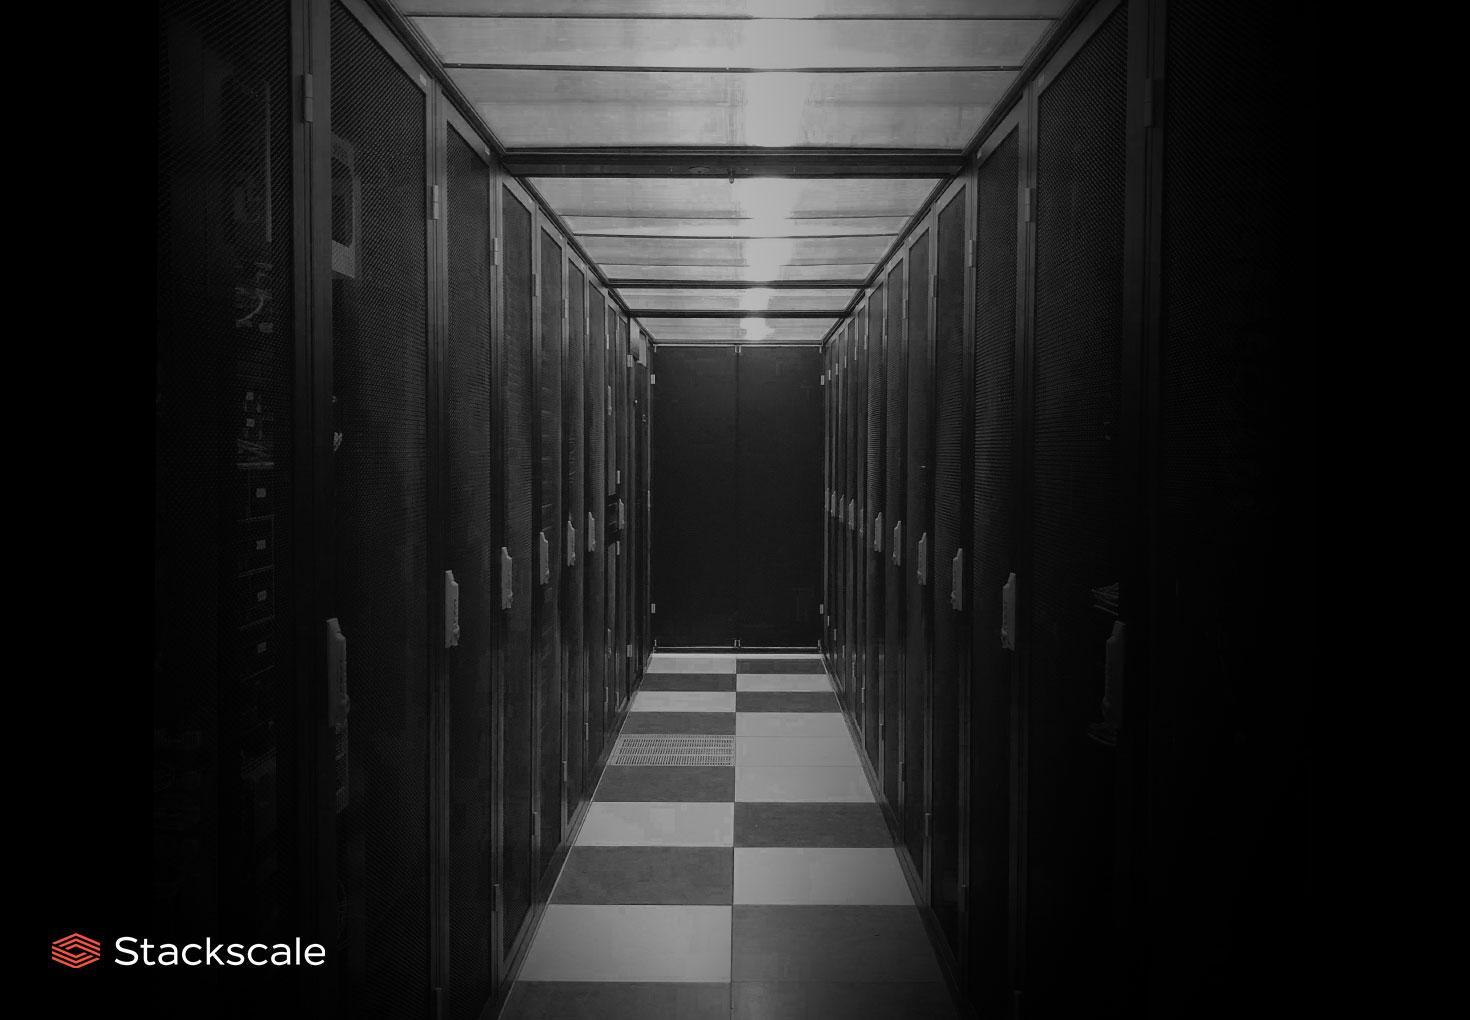 Stackscale cloud provider opens new data centers